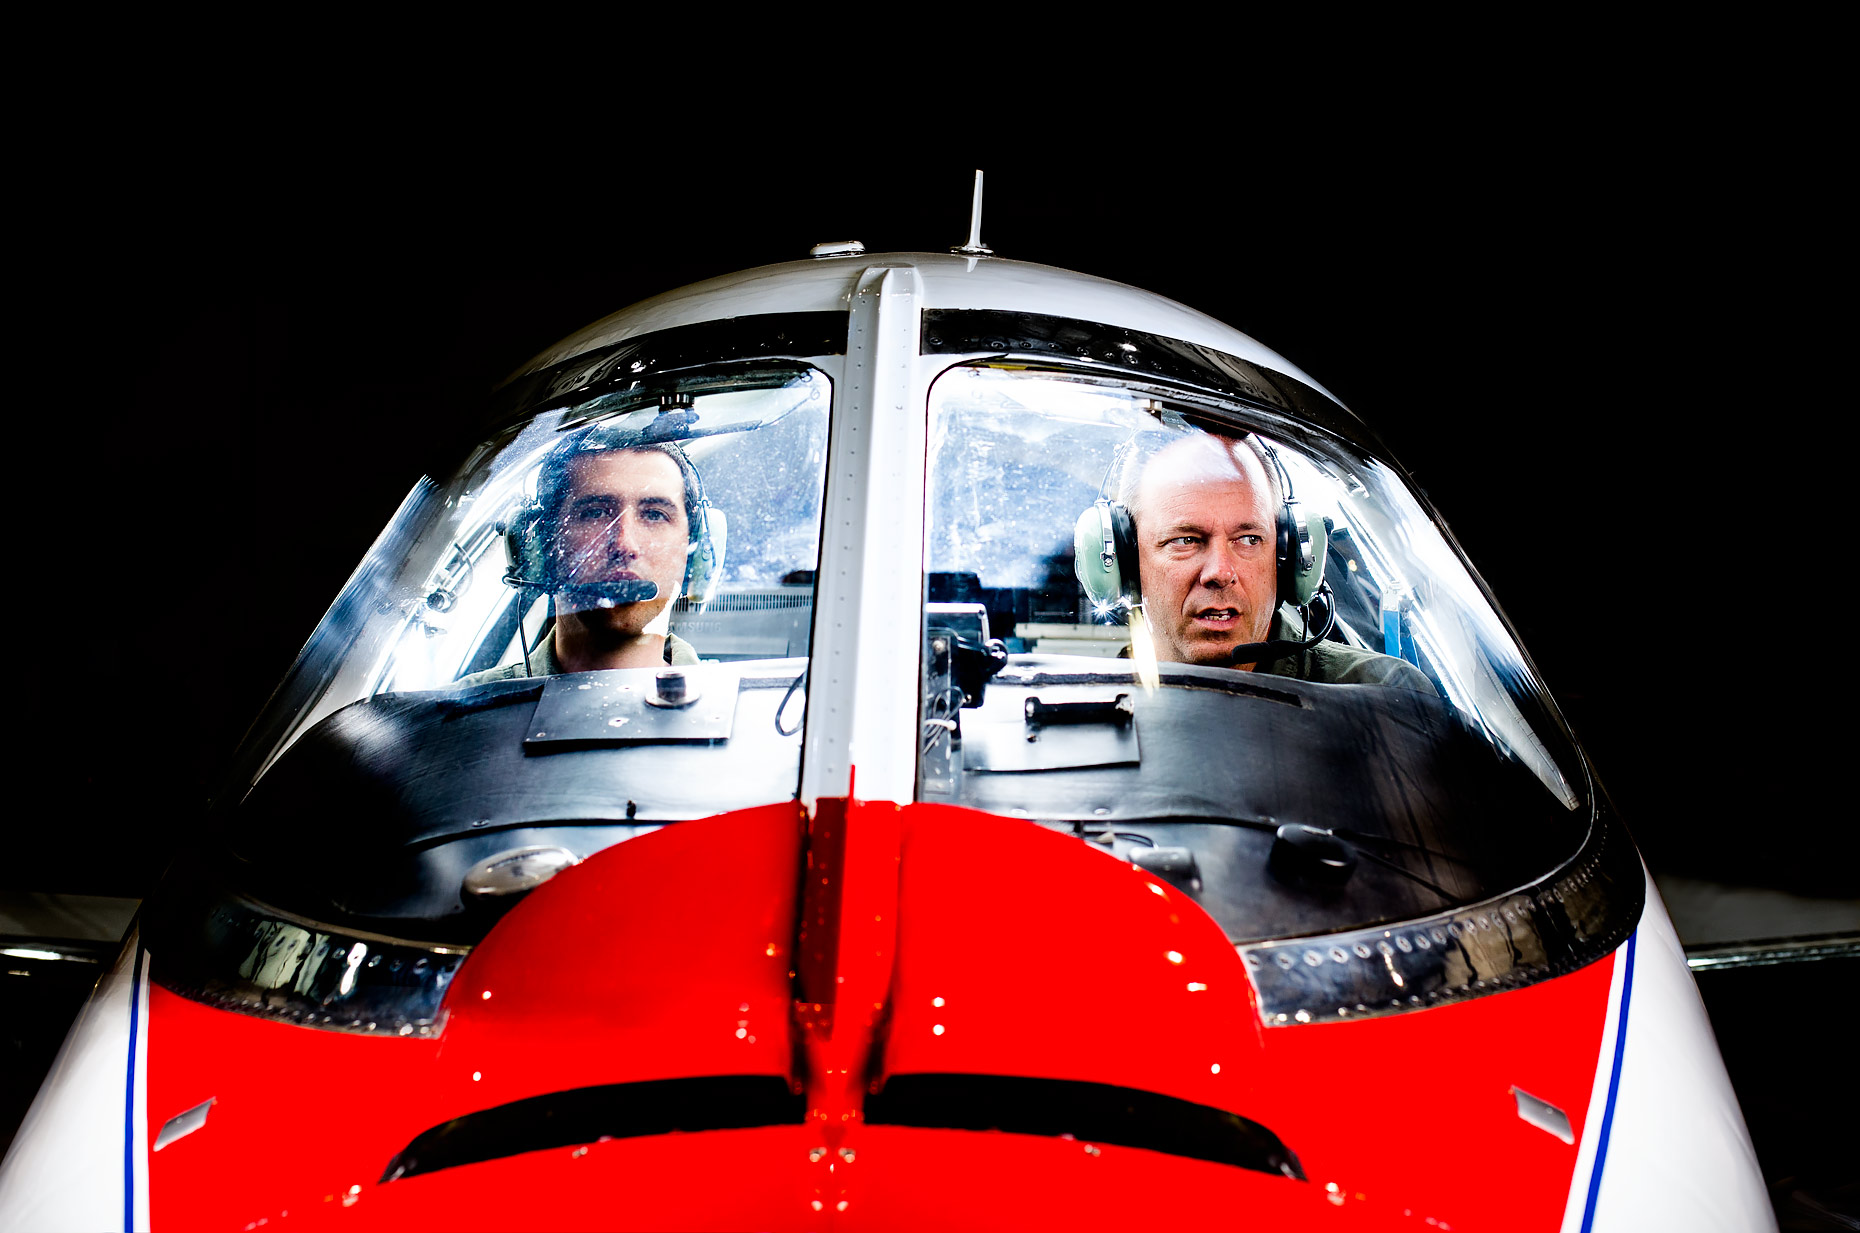 Jet cockpit | Scott Gable is an advertising and editorial photographer providing photography and video to corporate, industrial, healthcare and bio-science clients worldwide.